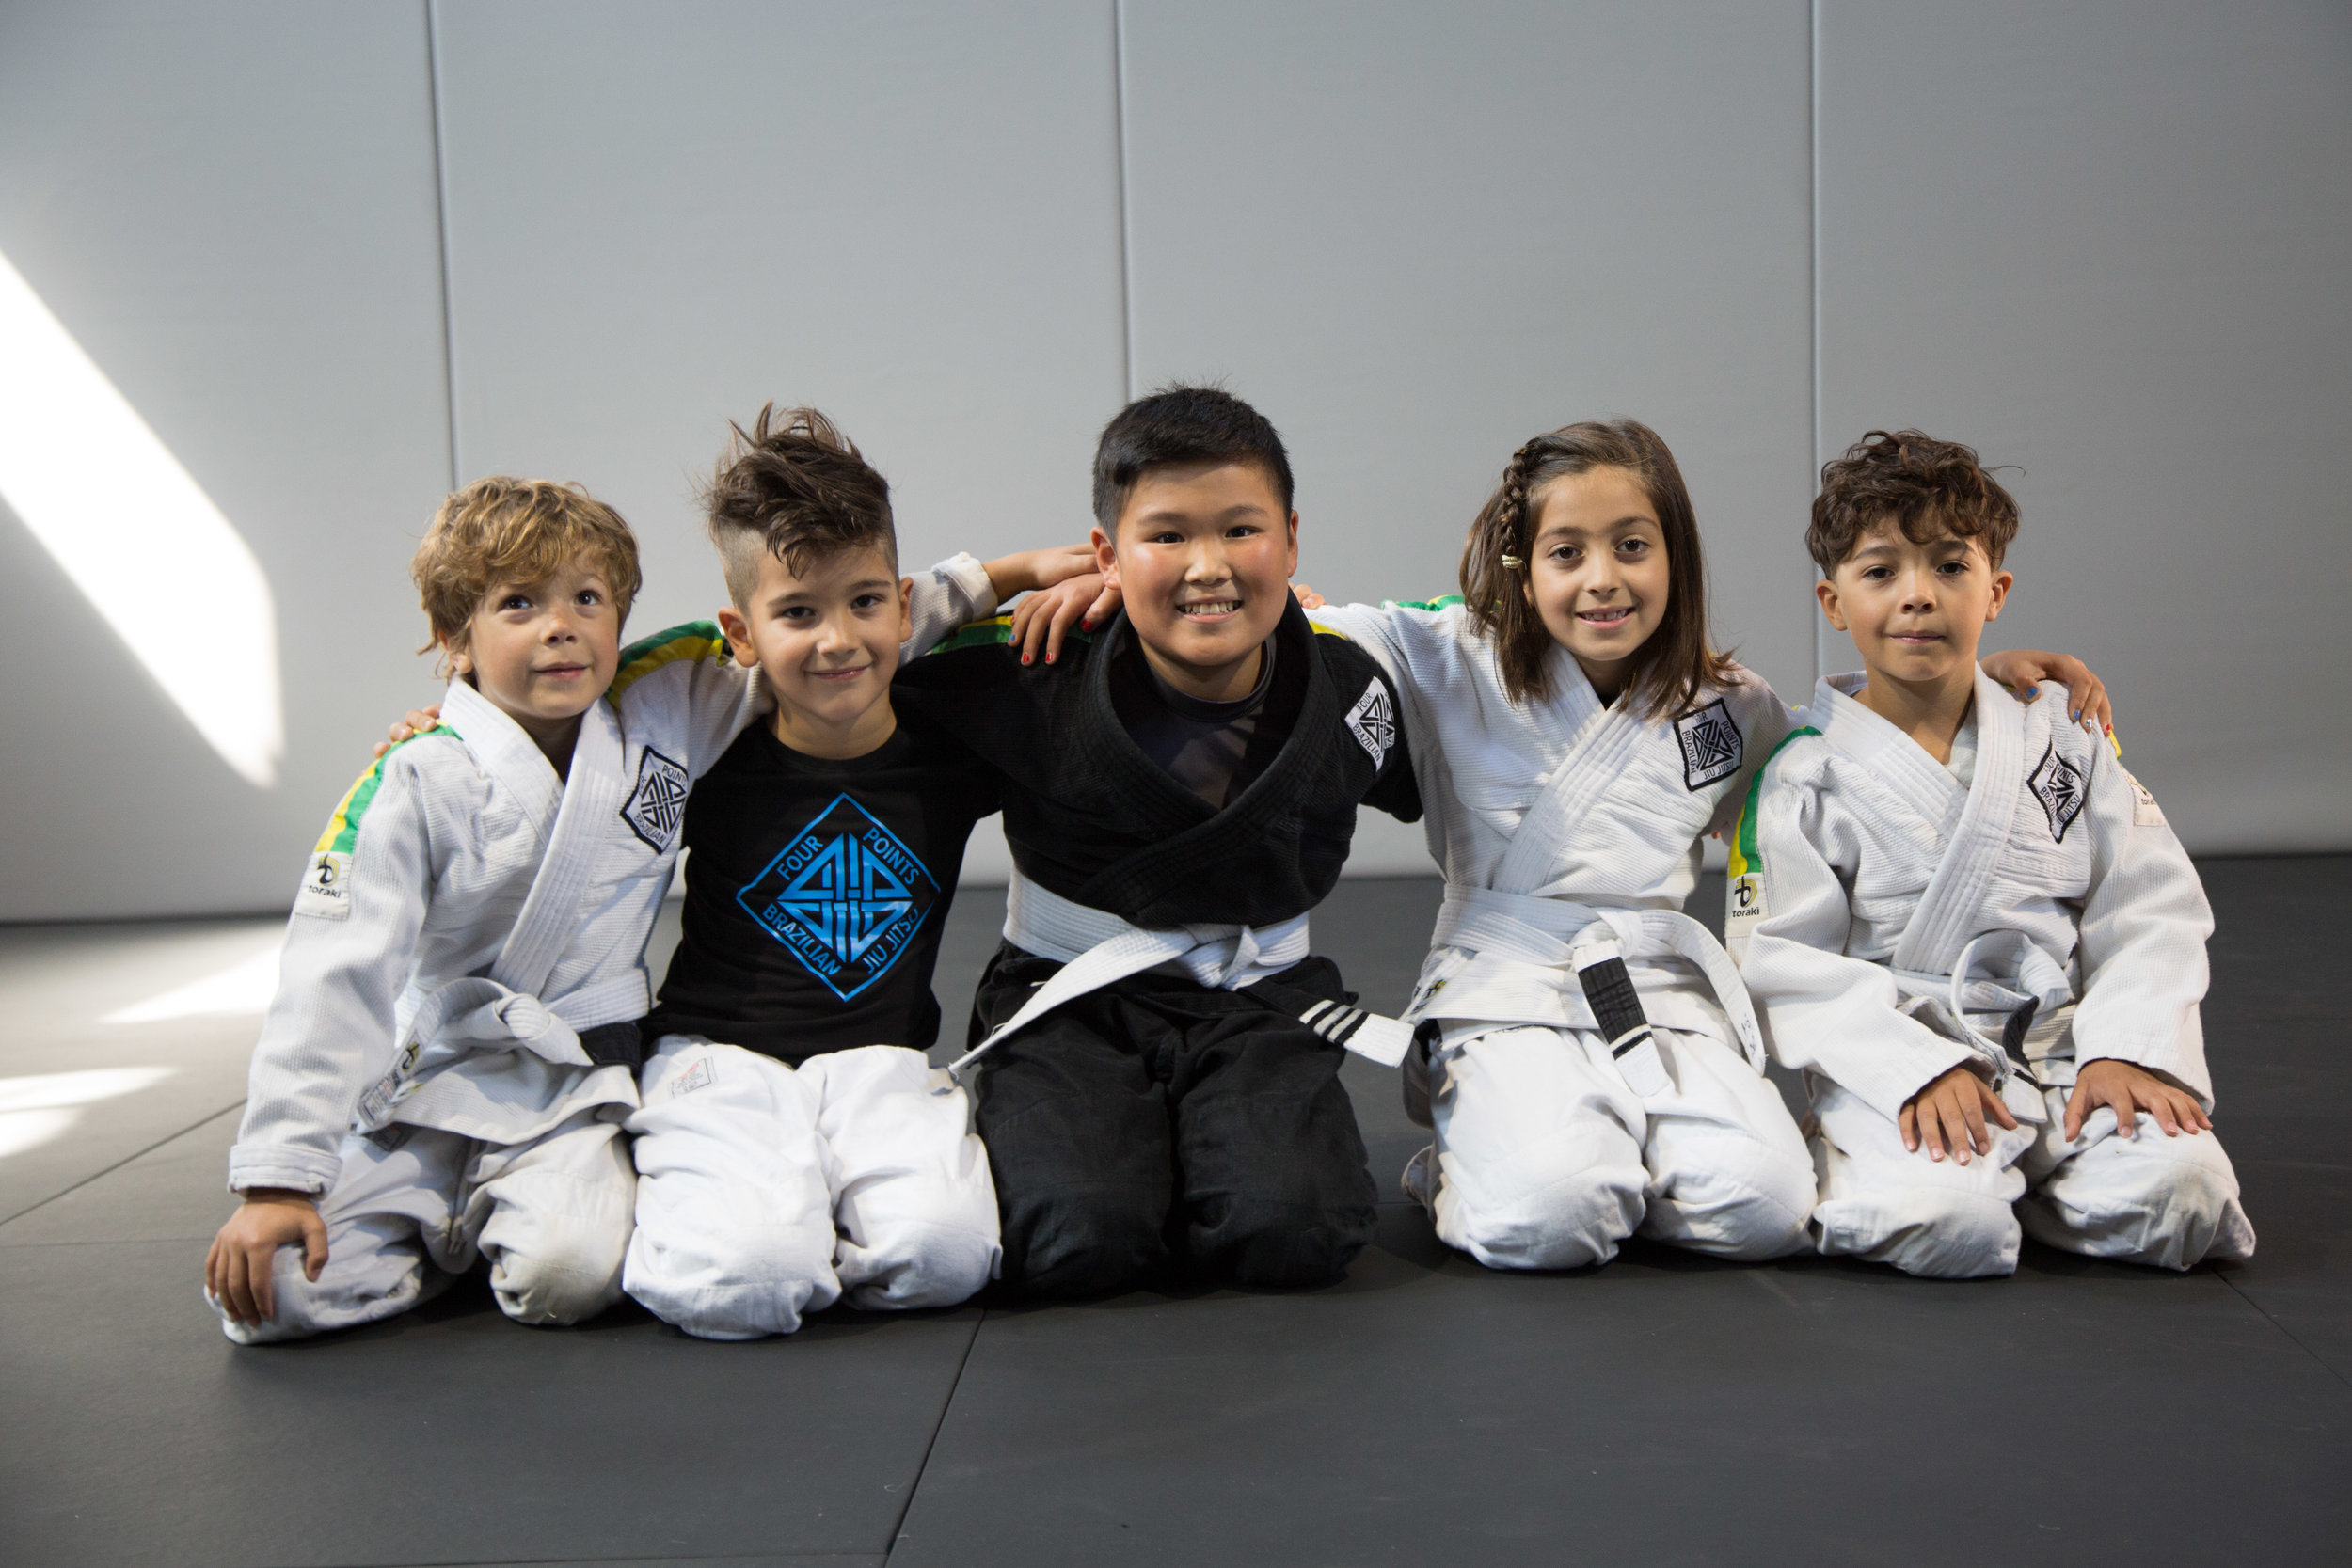 kids-bjj-happy-fun-friends